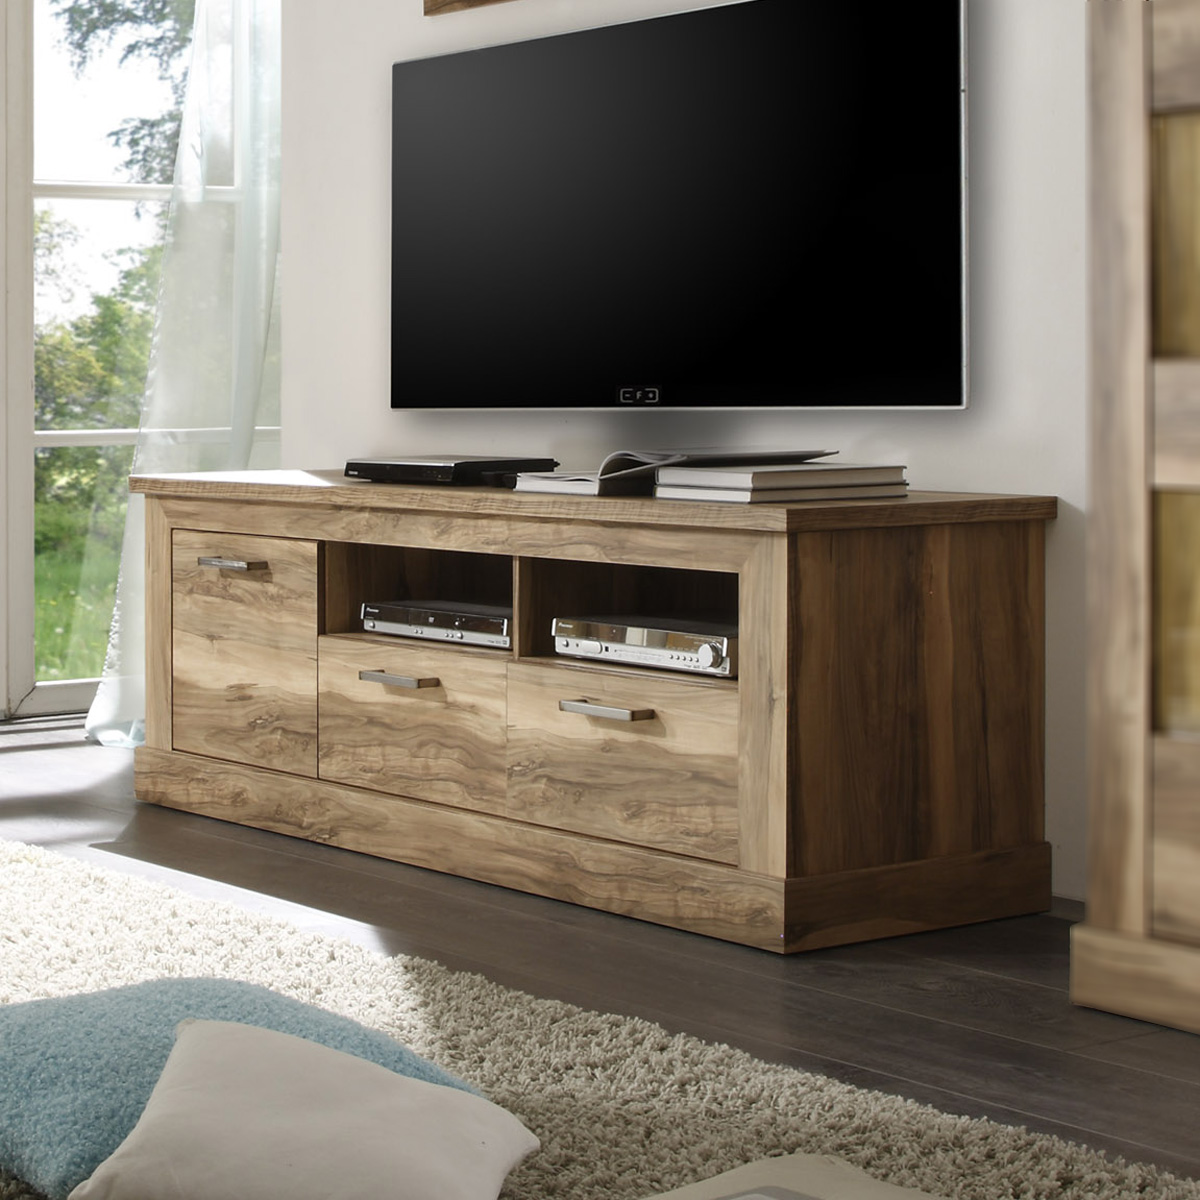 tv lowboard nussbaum inspirierendes design f r wohnm bel. Black Bedroom Furniture Sets. Home Design Ideas